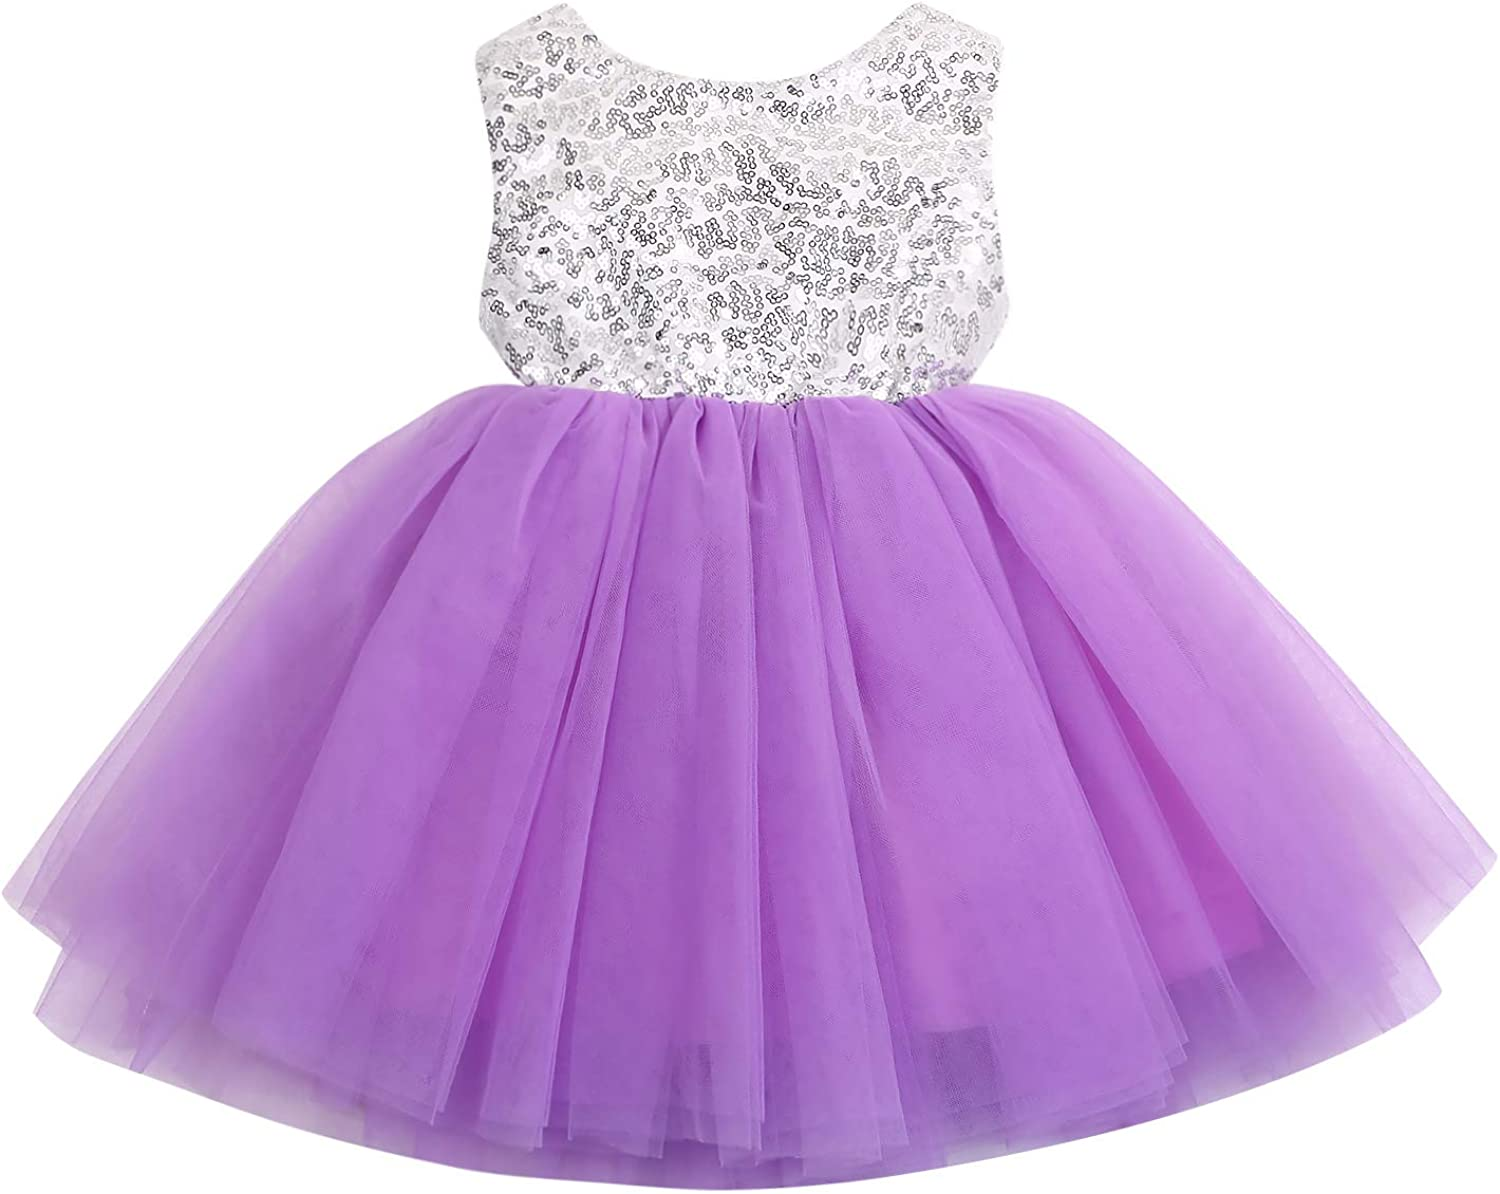 YOUNGER TREE Toddler Baby Girls Dress Sleeveless Sequins Party Dresses Princess Lace Tulle Tutu Dress